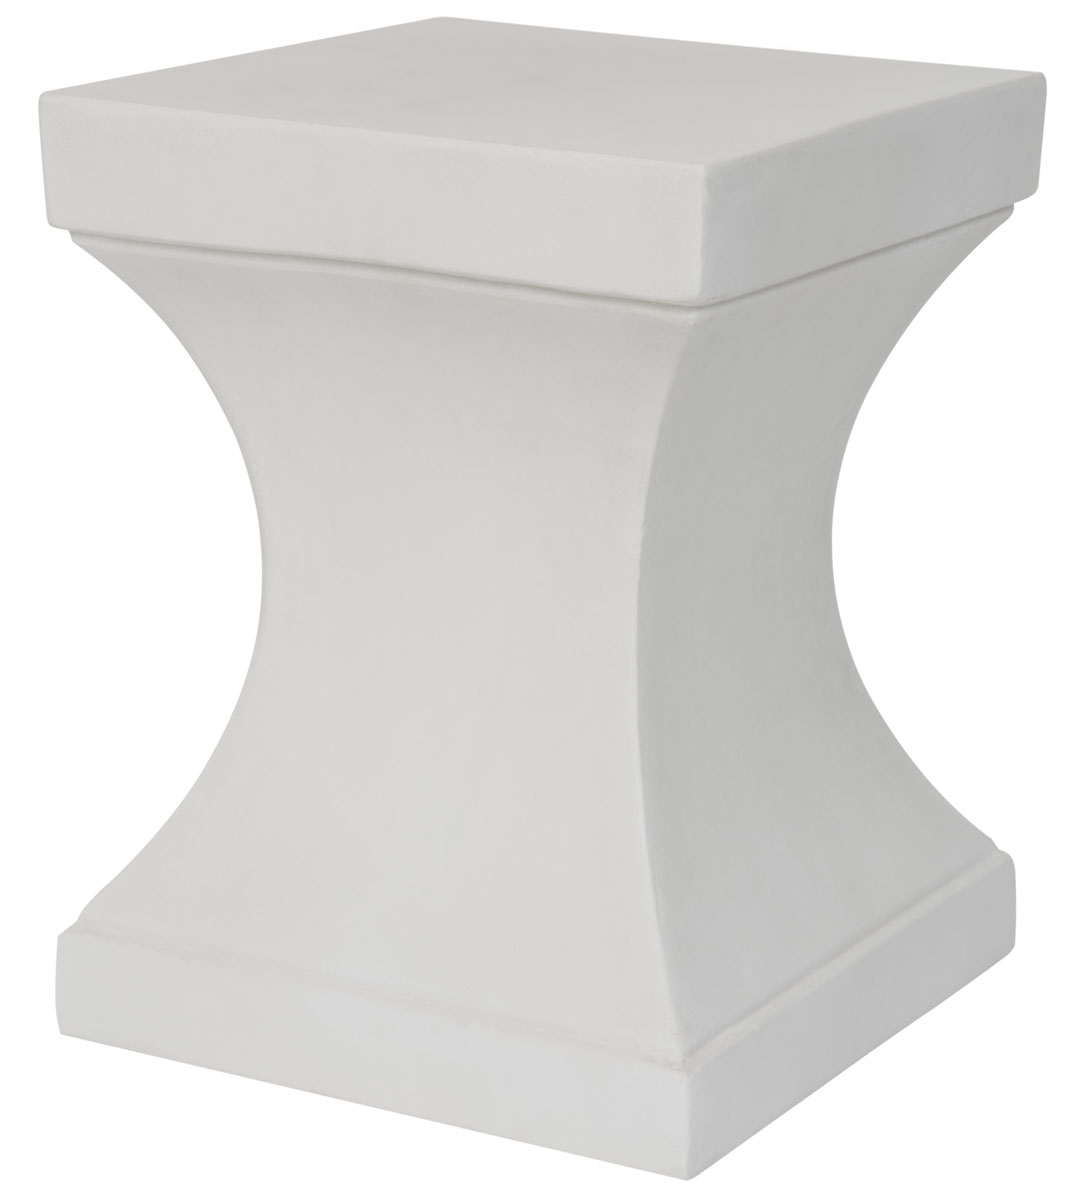 accent tables patio furniture safavieh side outdoor concrete table share this product breakfast bar and stools pottery barn white coffee target waldo small metal outside ikea